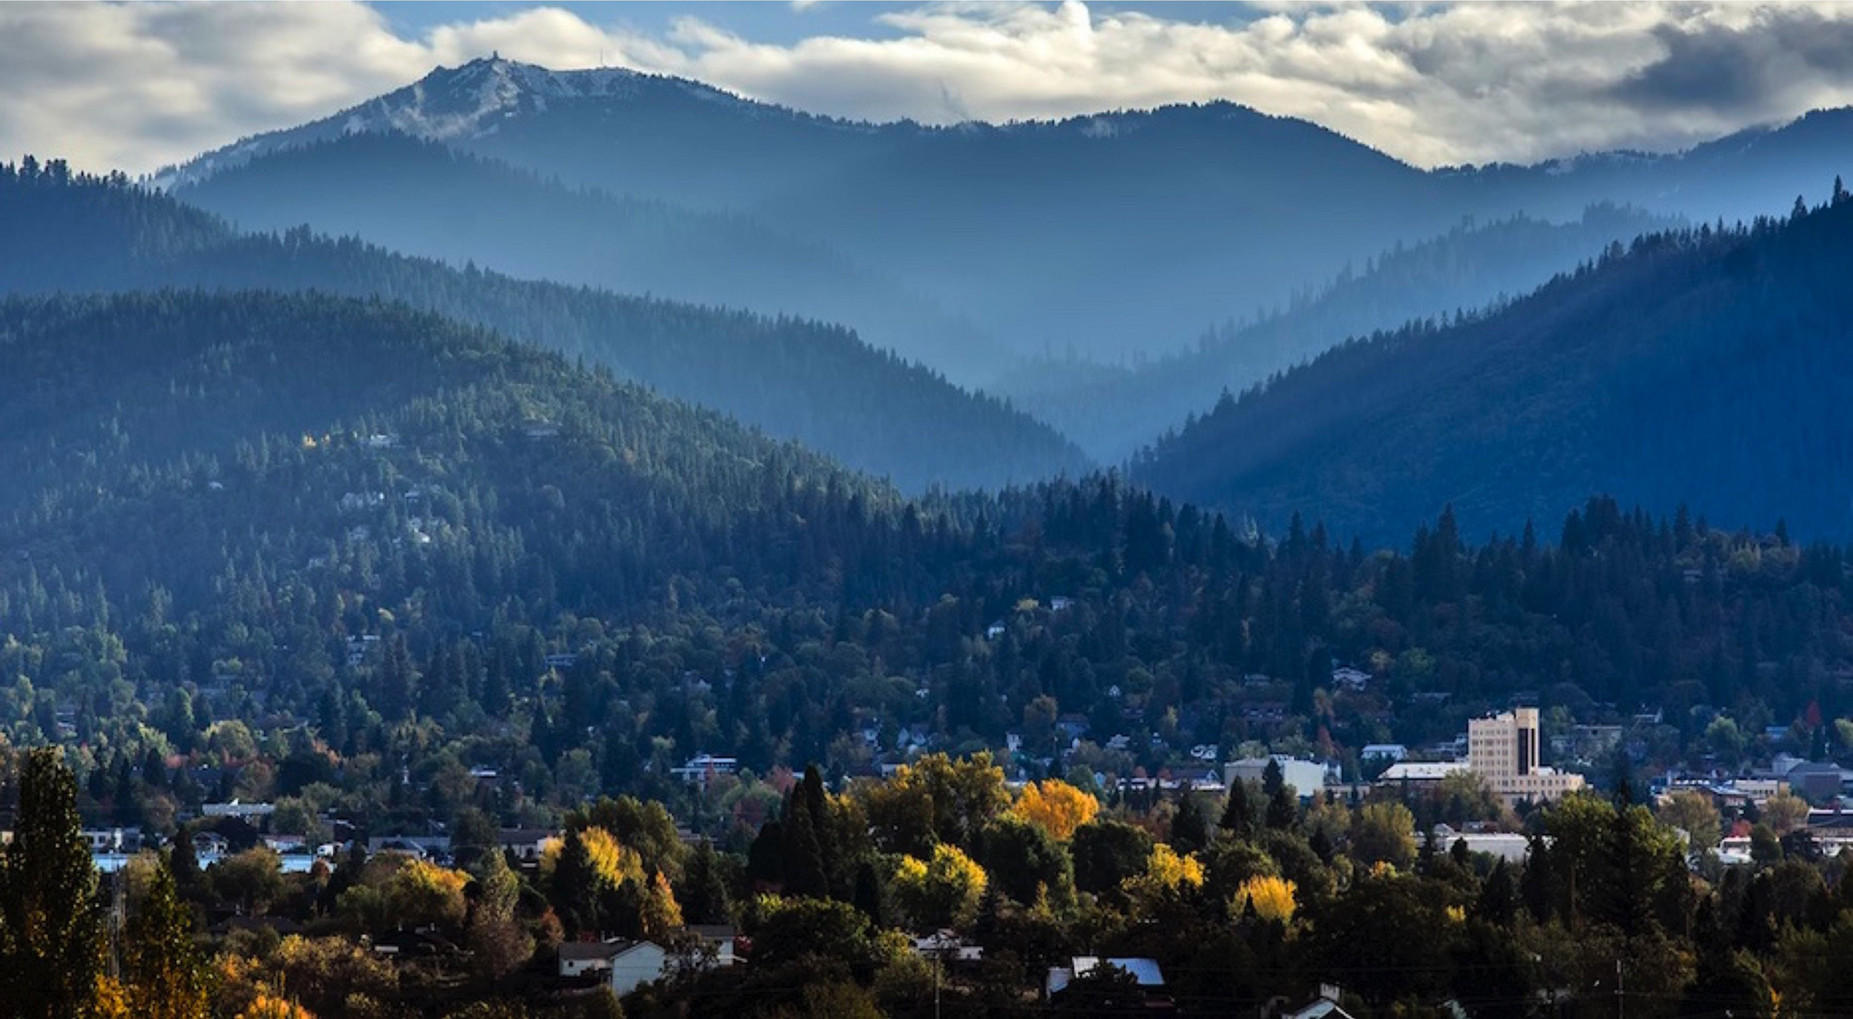 Join us in beautiful Ashland Oregon for the 6th Annual Honey & Mead Festival